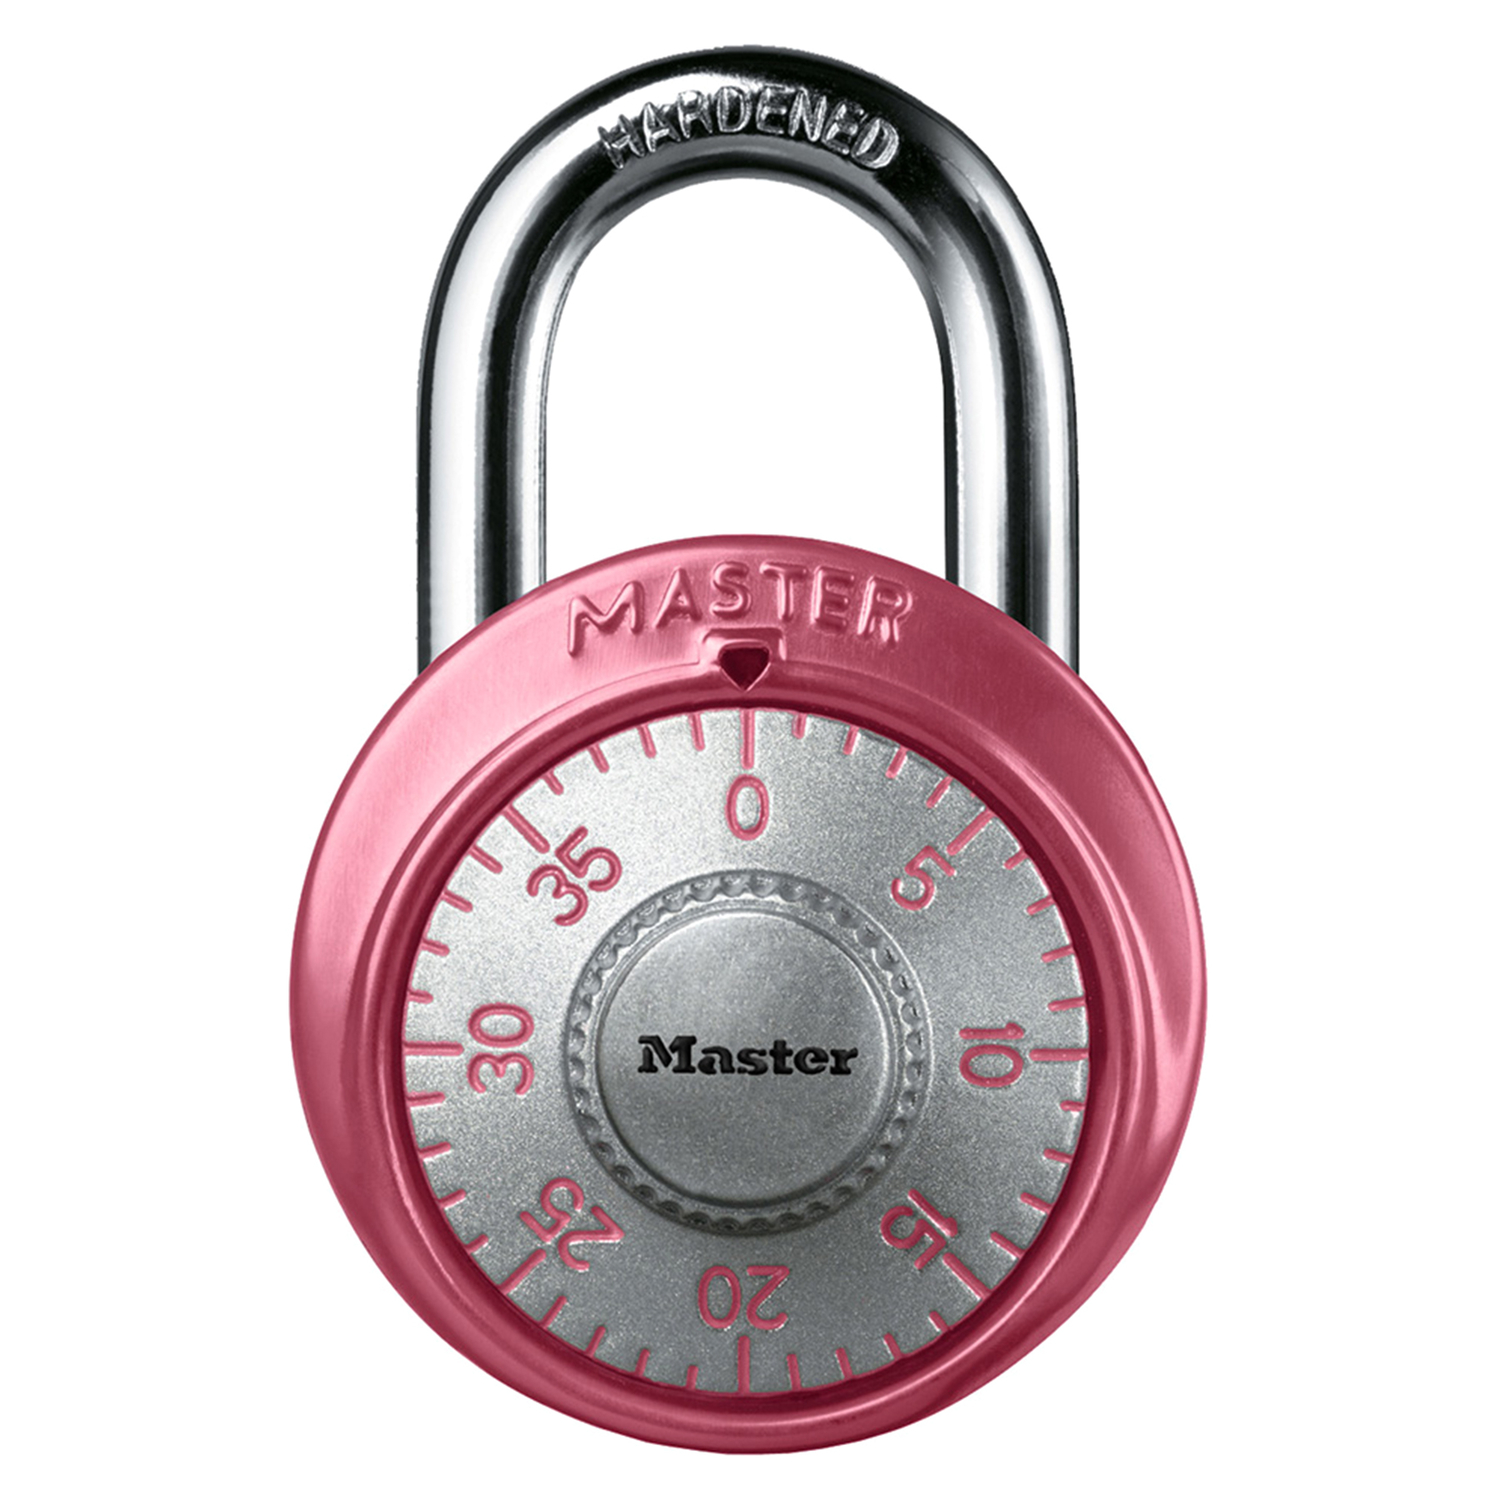 Master Lock  7/8 in. W x 2 in. H 3-Dial Combination  Steel  Combination Padlock  1 each